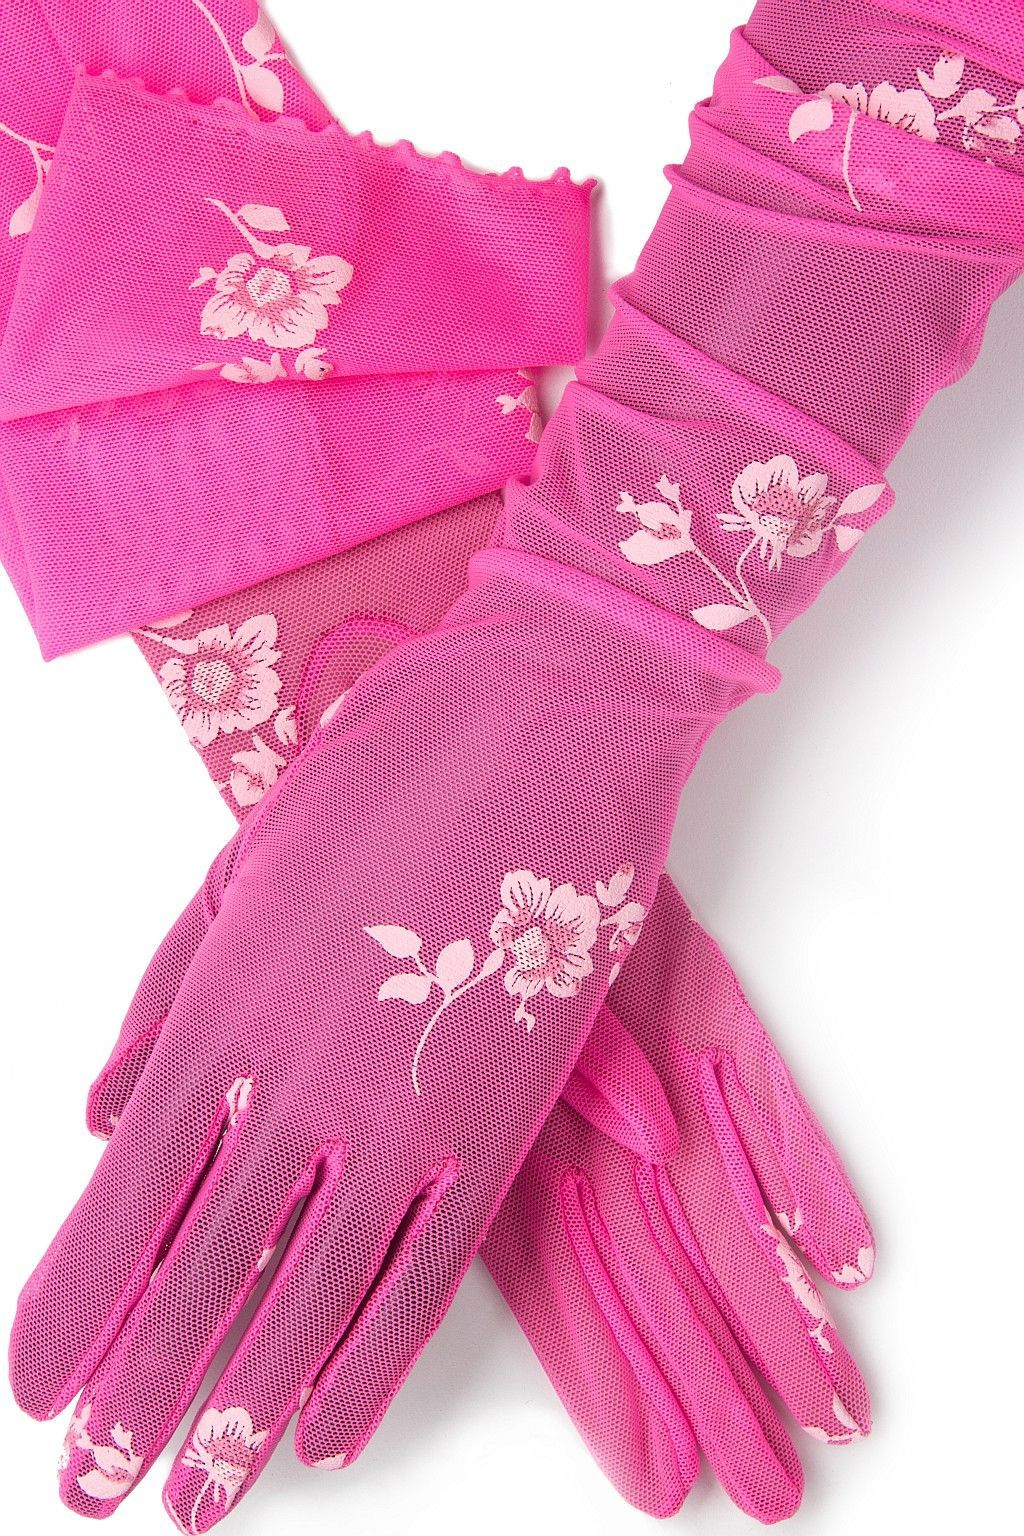 Evening-Gloves-0834